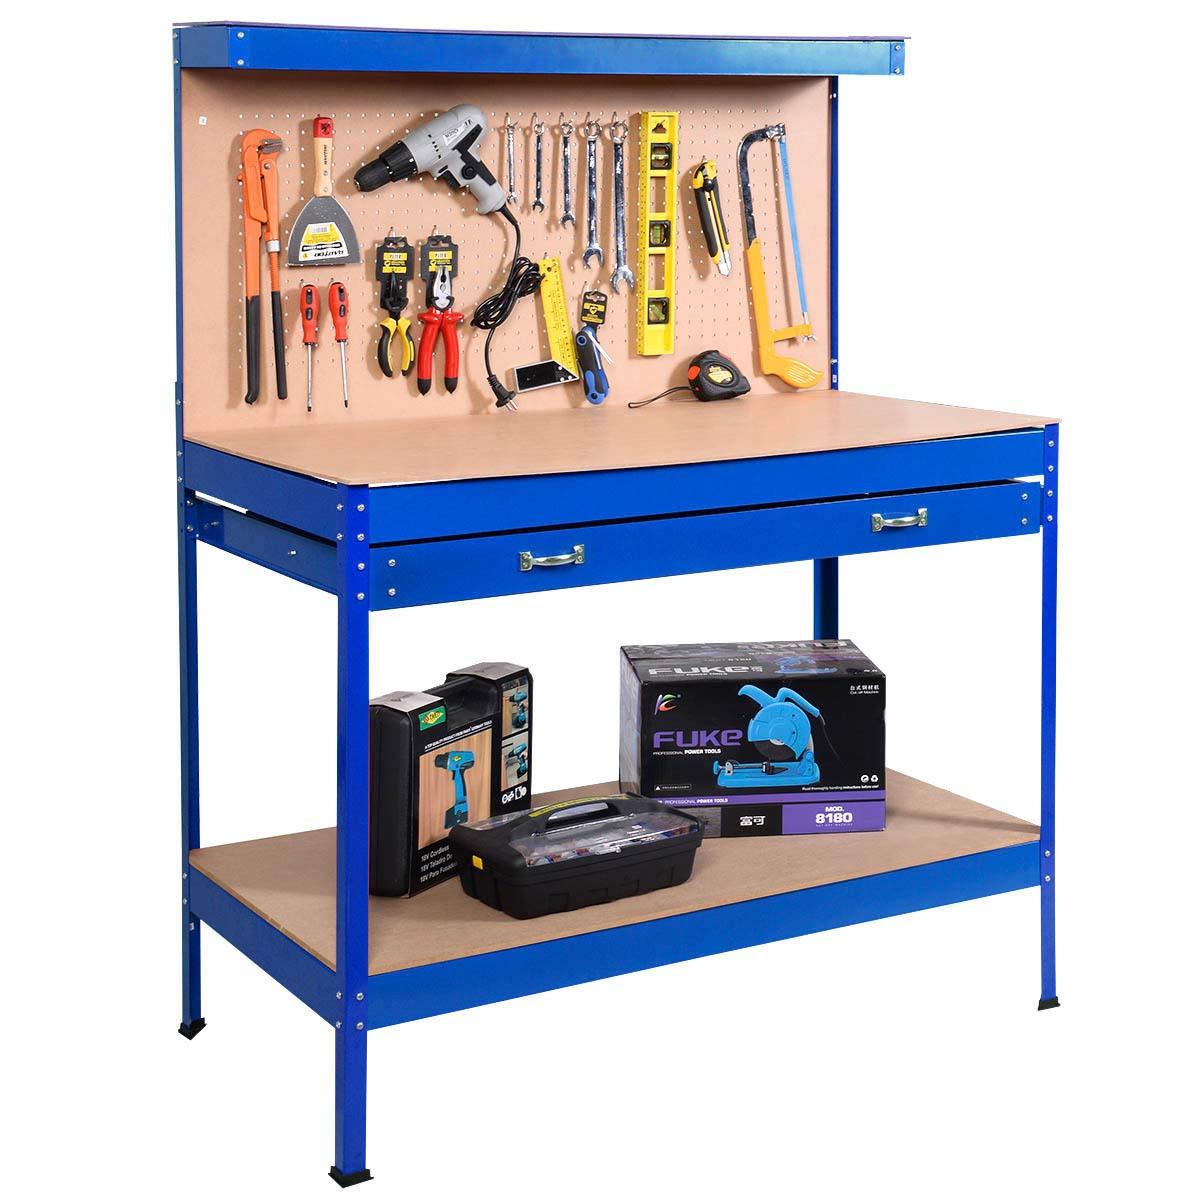 Safstar Work Bench Home Workshop Tools Table with Organizer Drawer (One Pack, Blue)